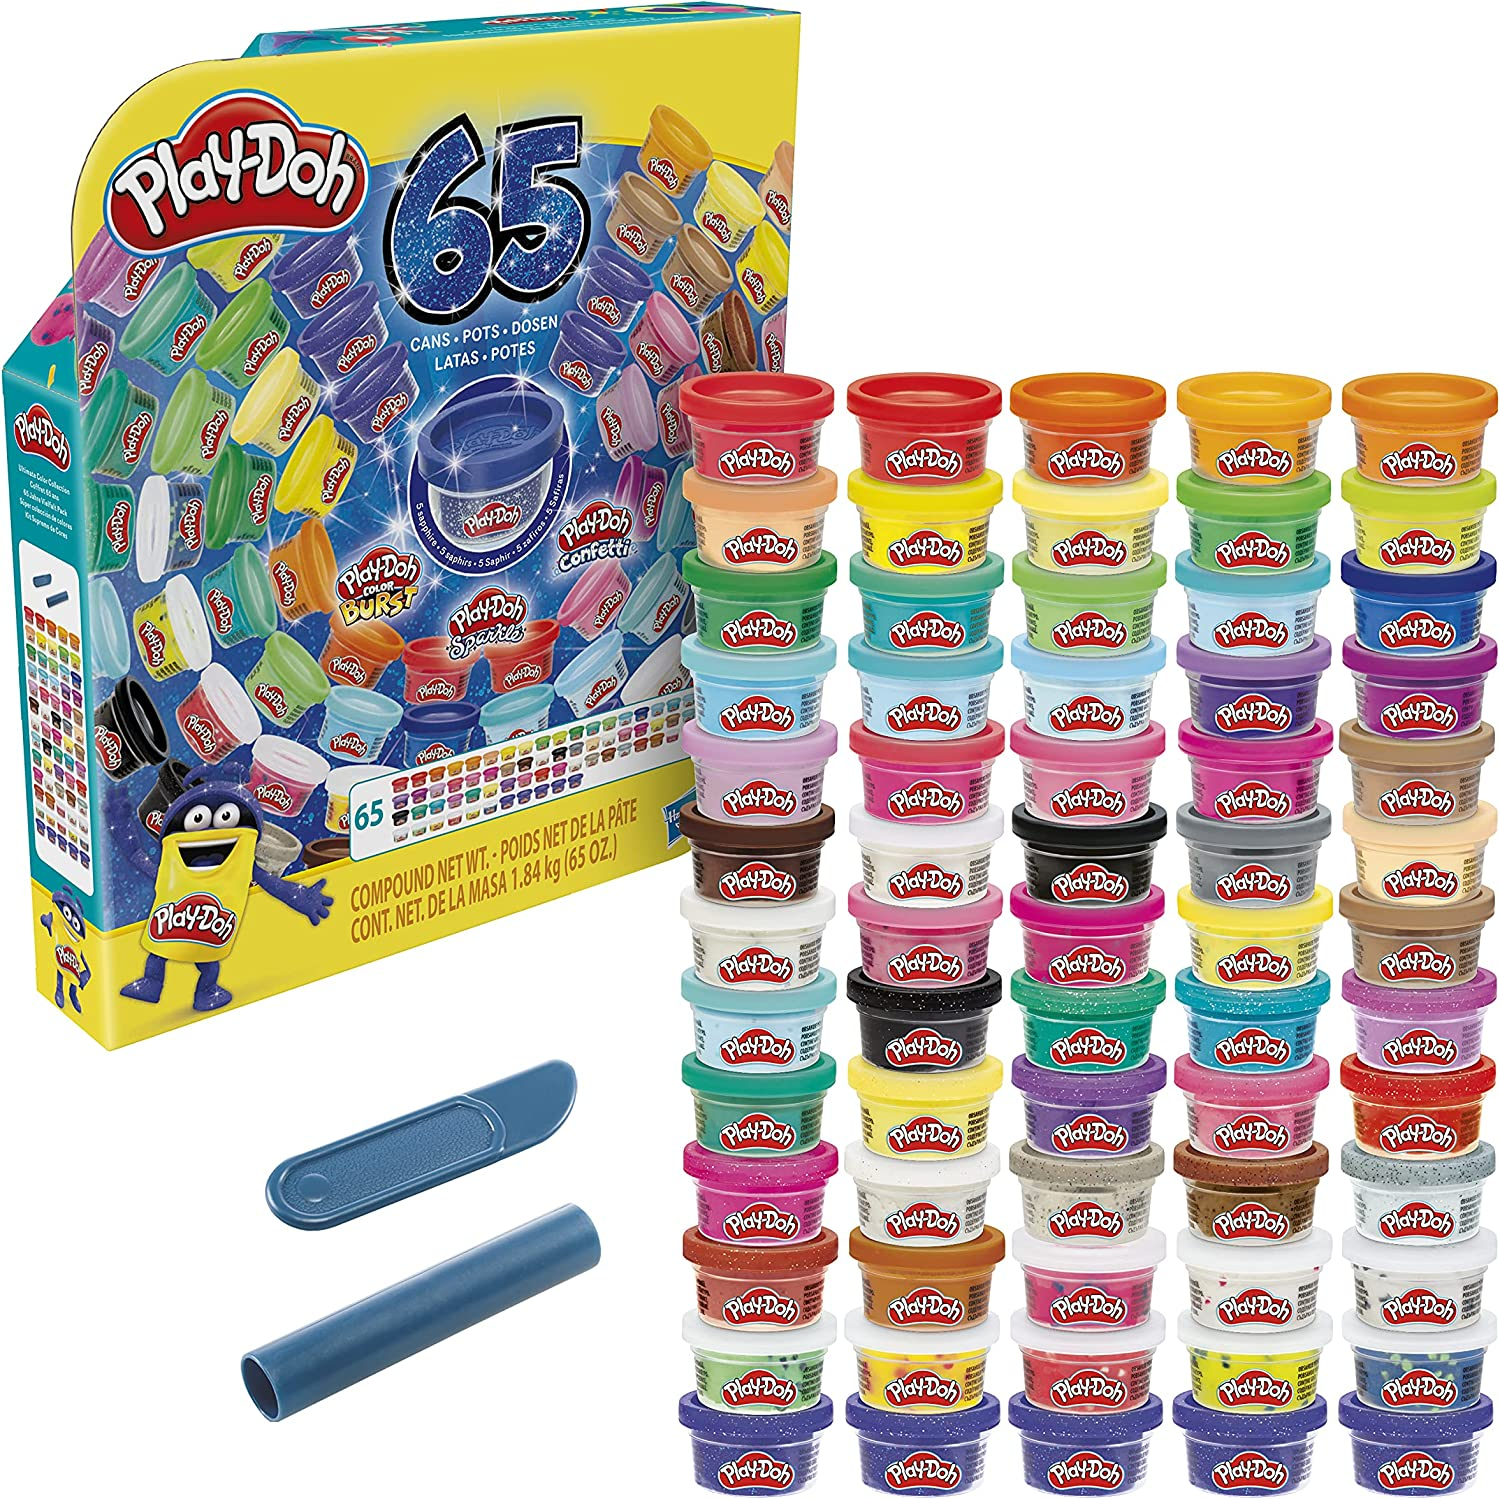 Play-Doh Ultimate Color Las Vegas Mall Import Collection 65-Pack of Compound Modeling